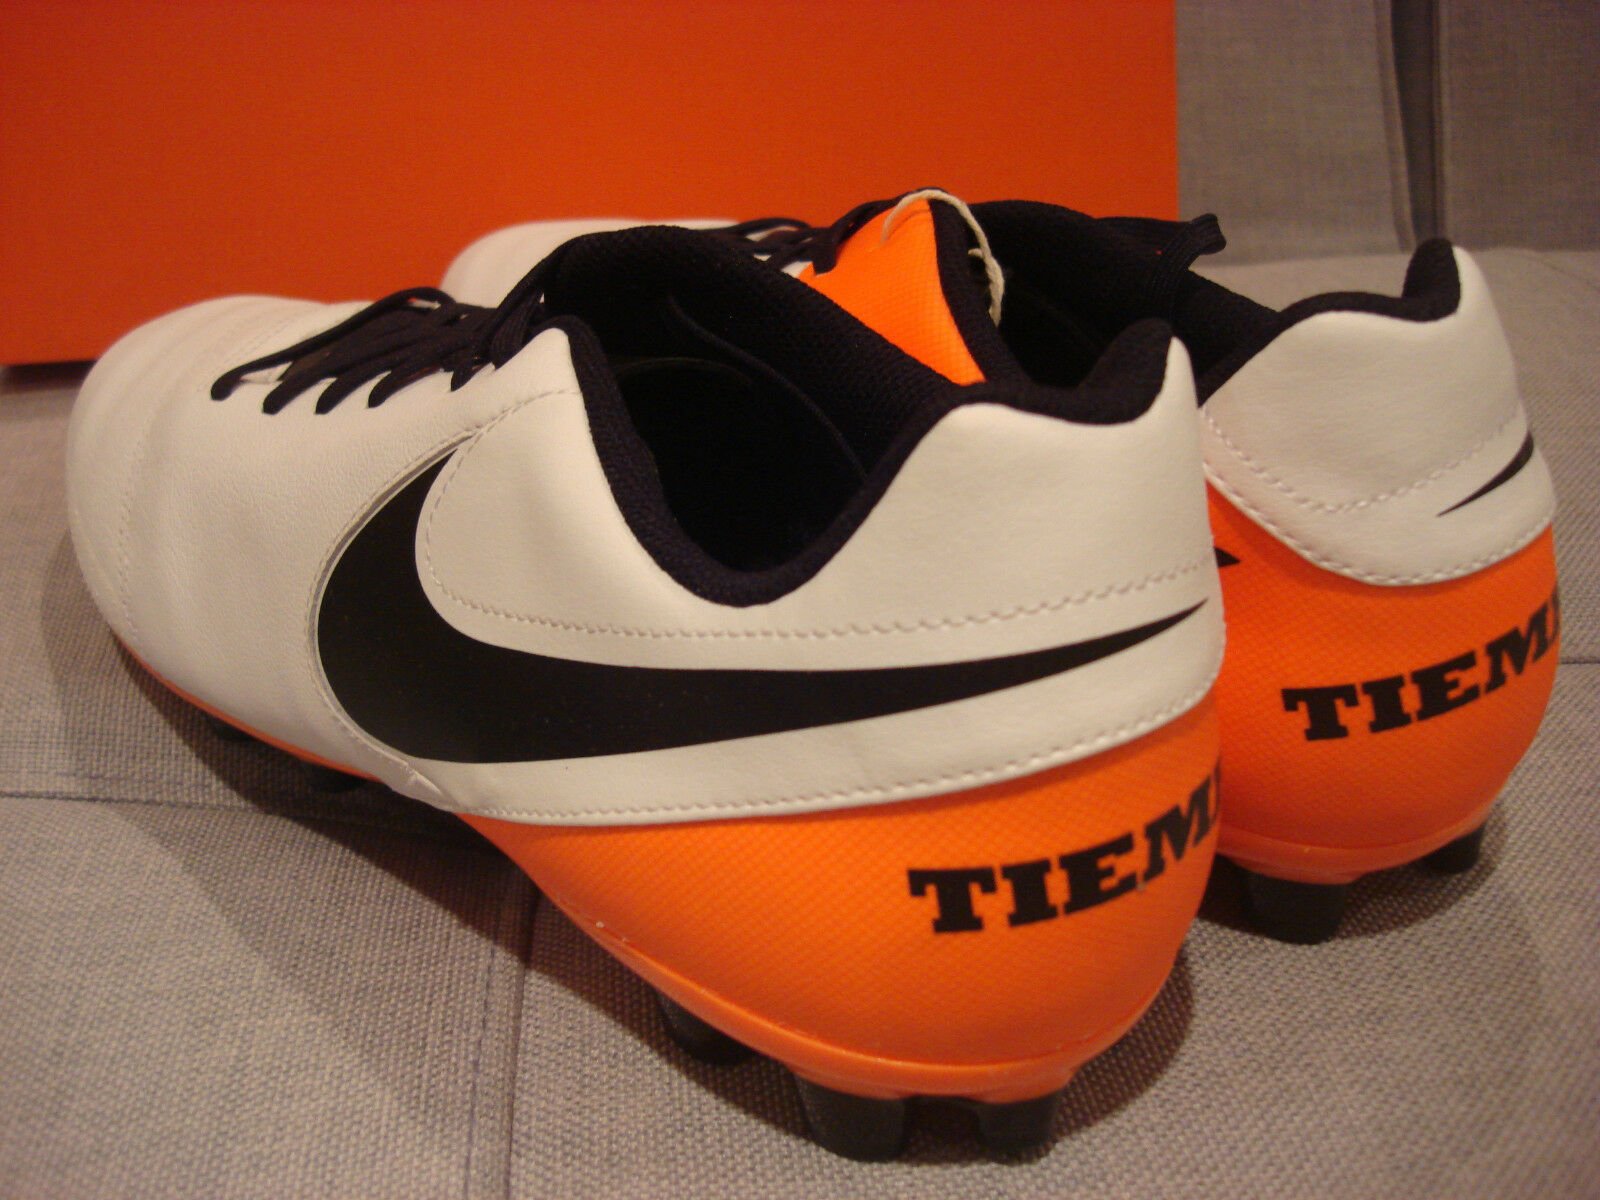 NIKE TIEMPO GENIO II SOCCER FOOTBALL FOOTBALL FOOTBALL SIZE 12 WHITE BLACK SHOES - BRAND NEW 0ff5ad